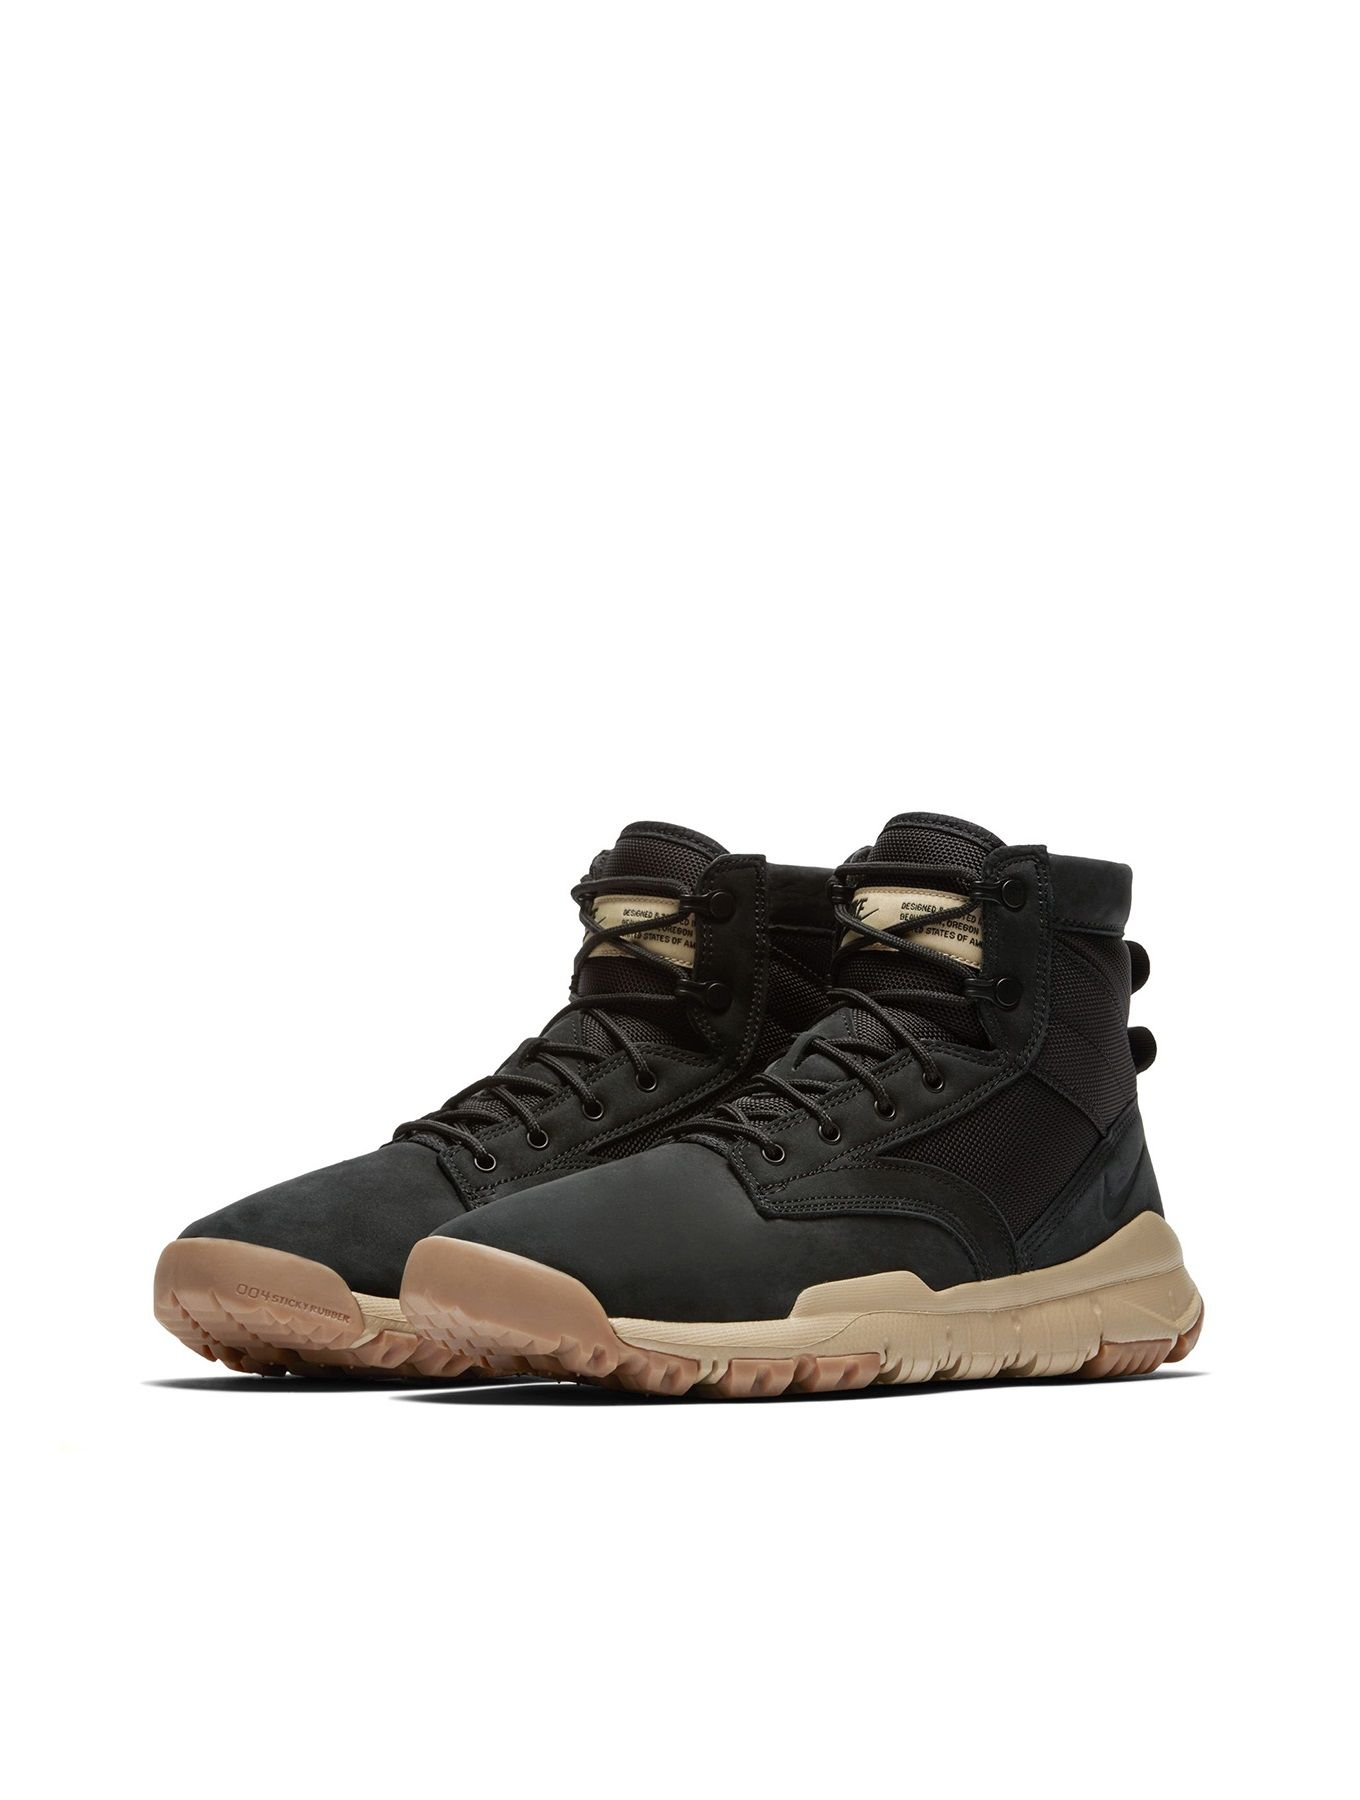 new product 4d1eb 620af Nike SFB 6 Inch NSW Leather Boot  Black Mushroom